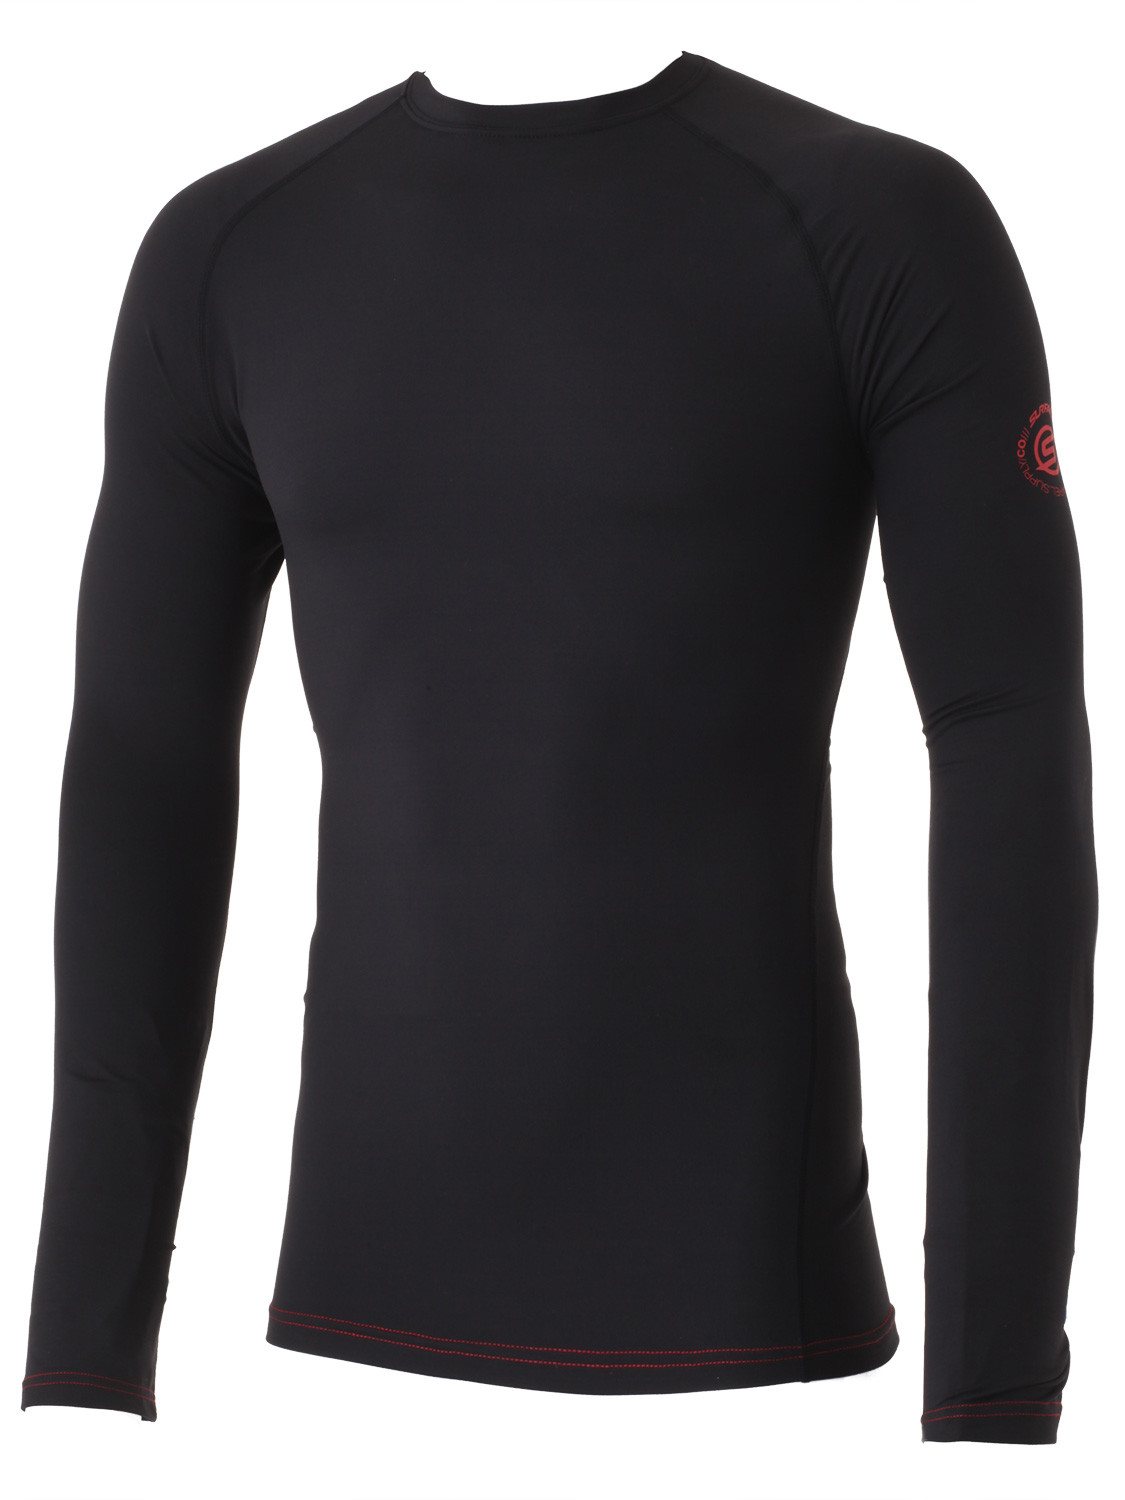 Jonah Crew Neck Baselayer